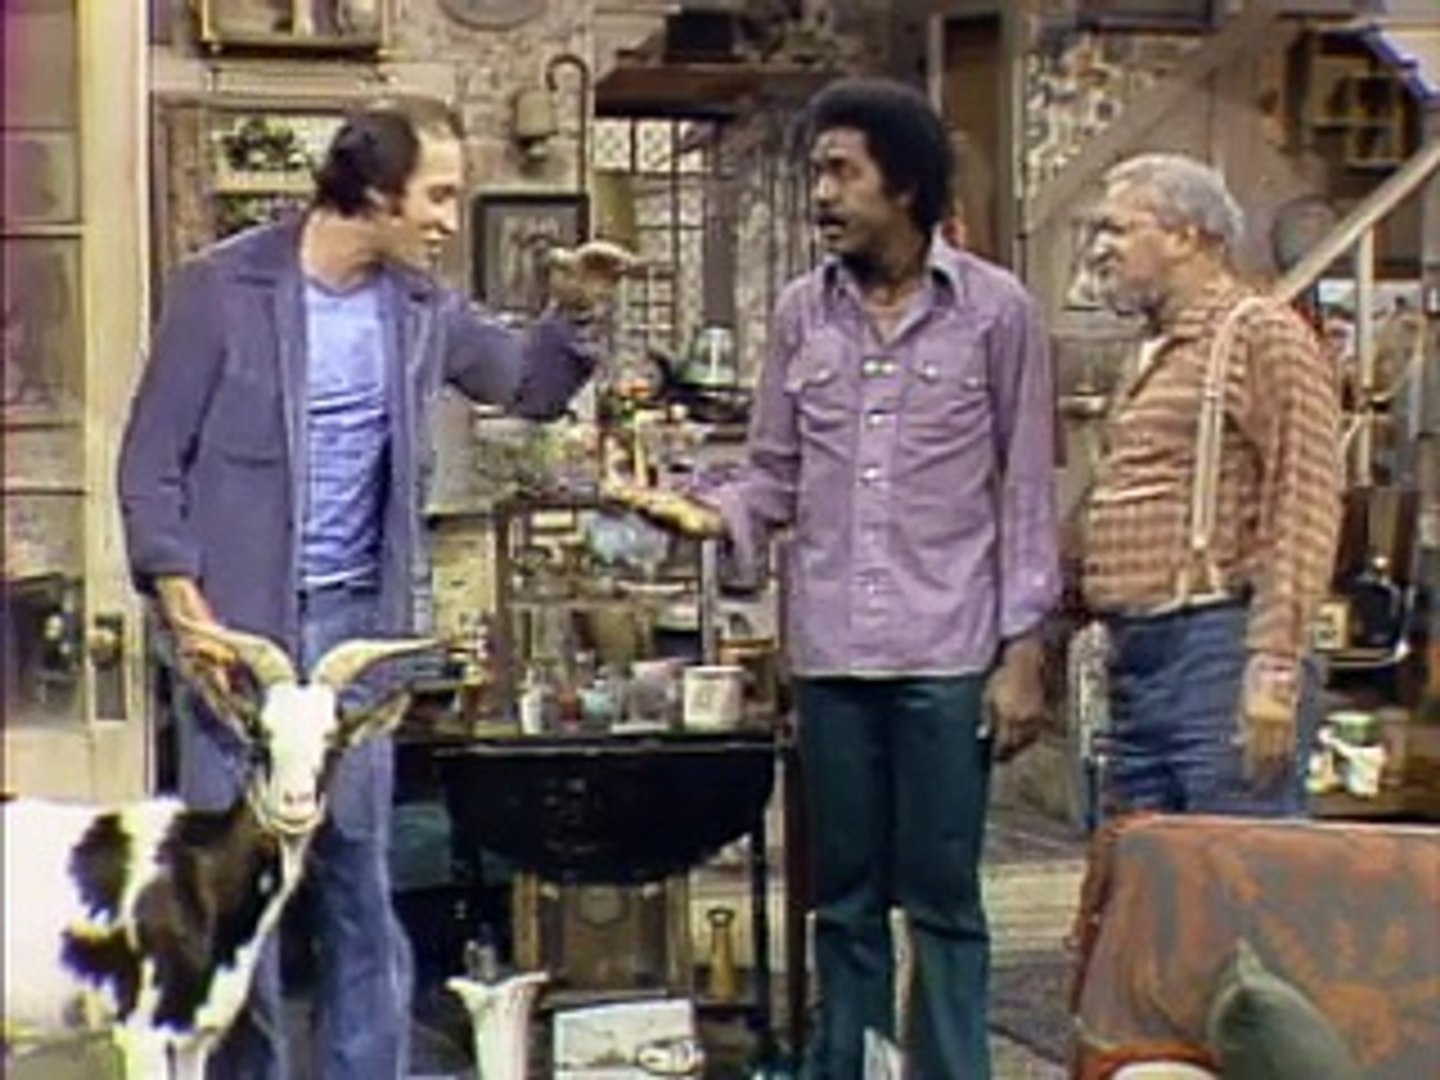 SANFORD AND SON S4 E14